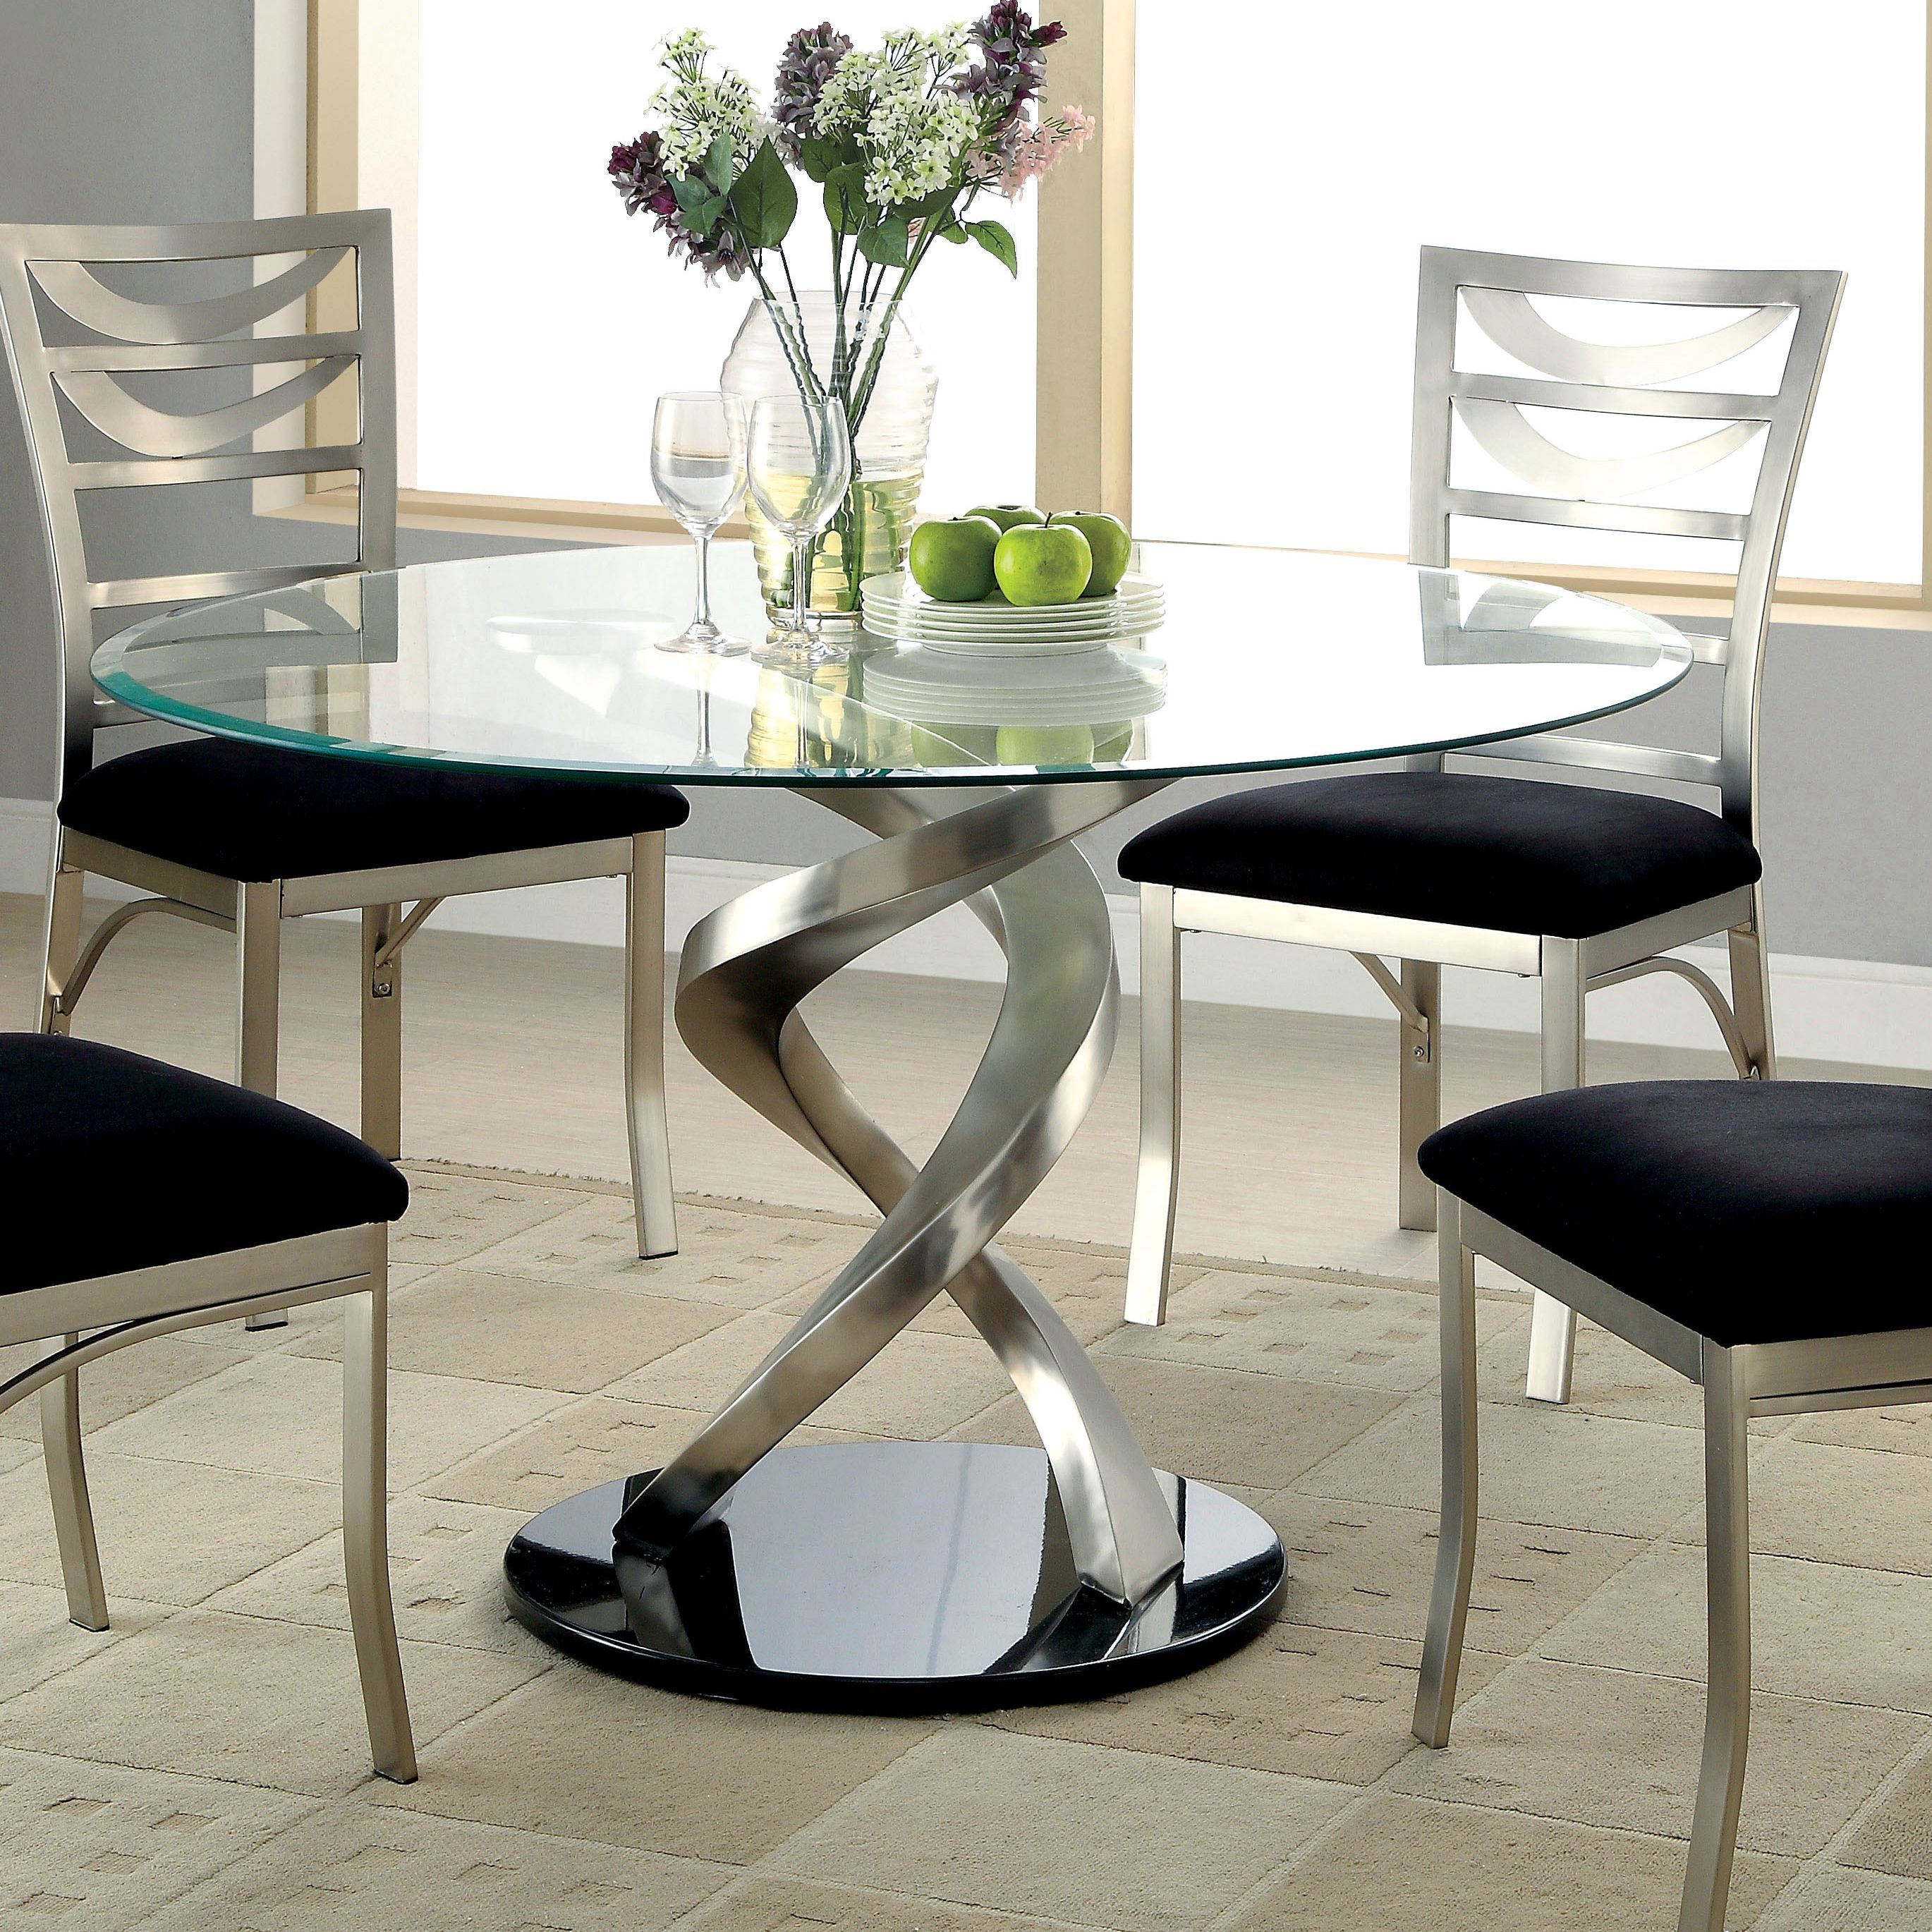 Bring Modern Sculpture Designs To The Dining Room With This Elegant And Swirl